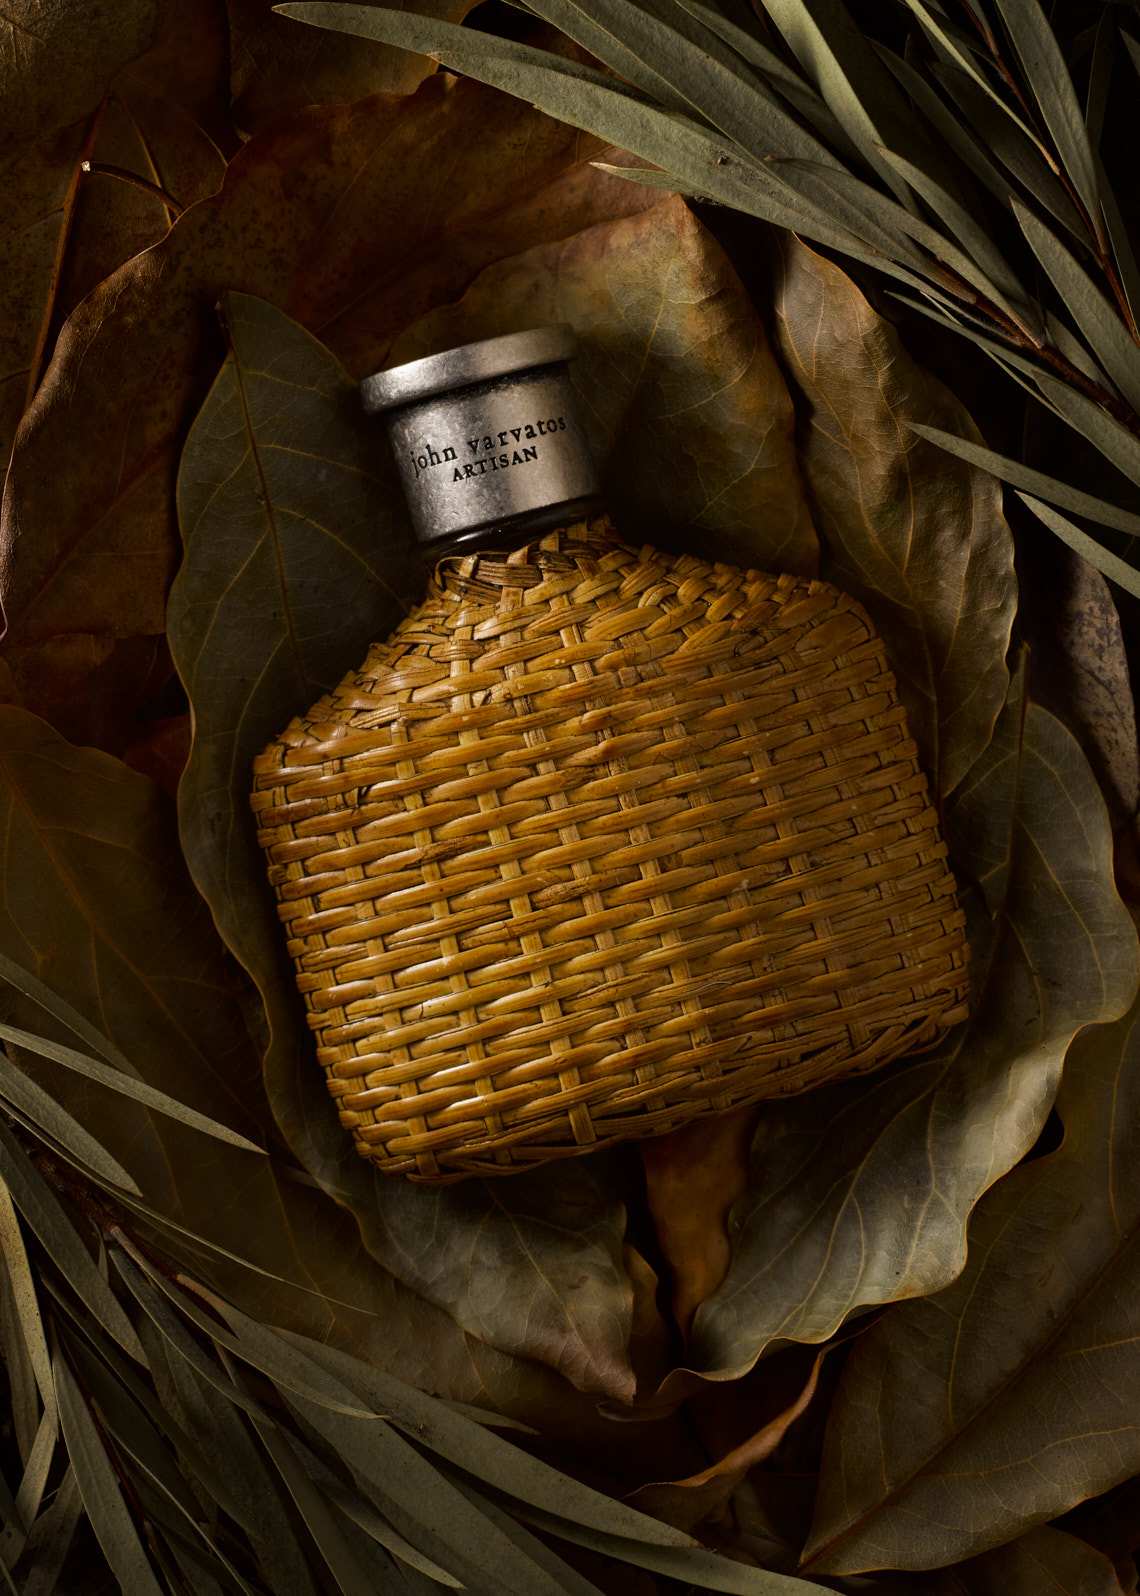 John Varvatos Cologne - Product Photographer LA Charlie Sin